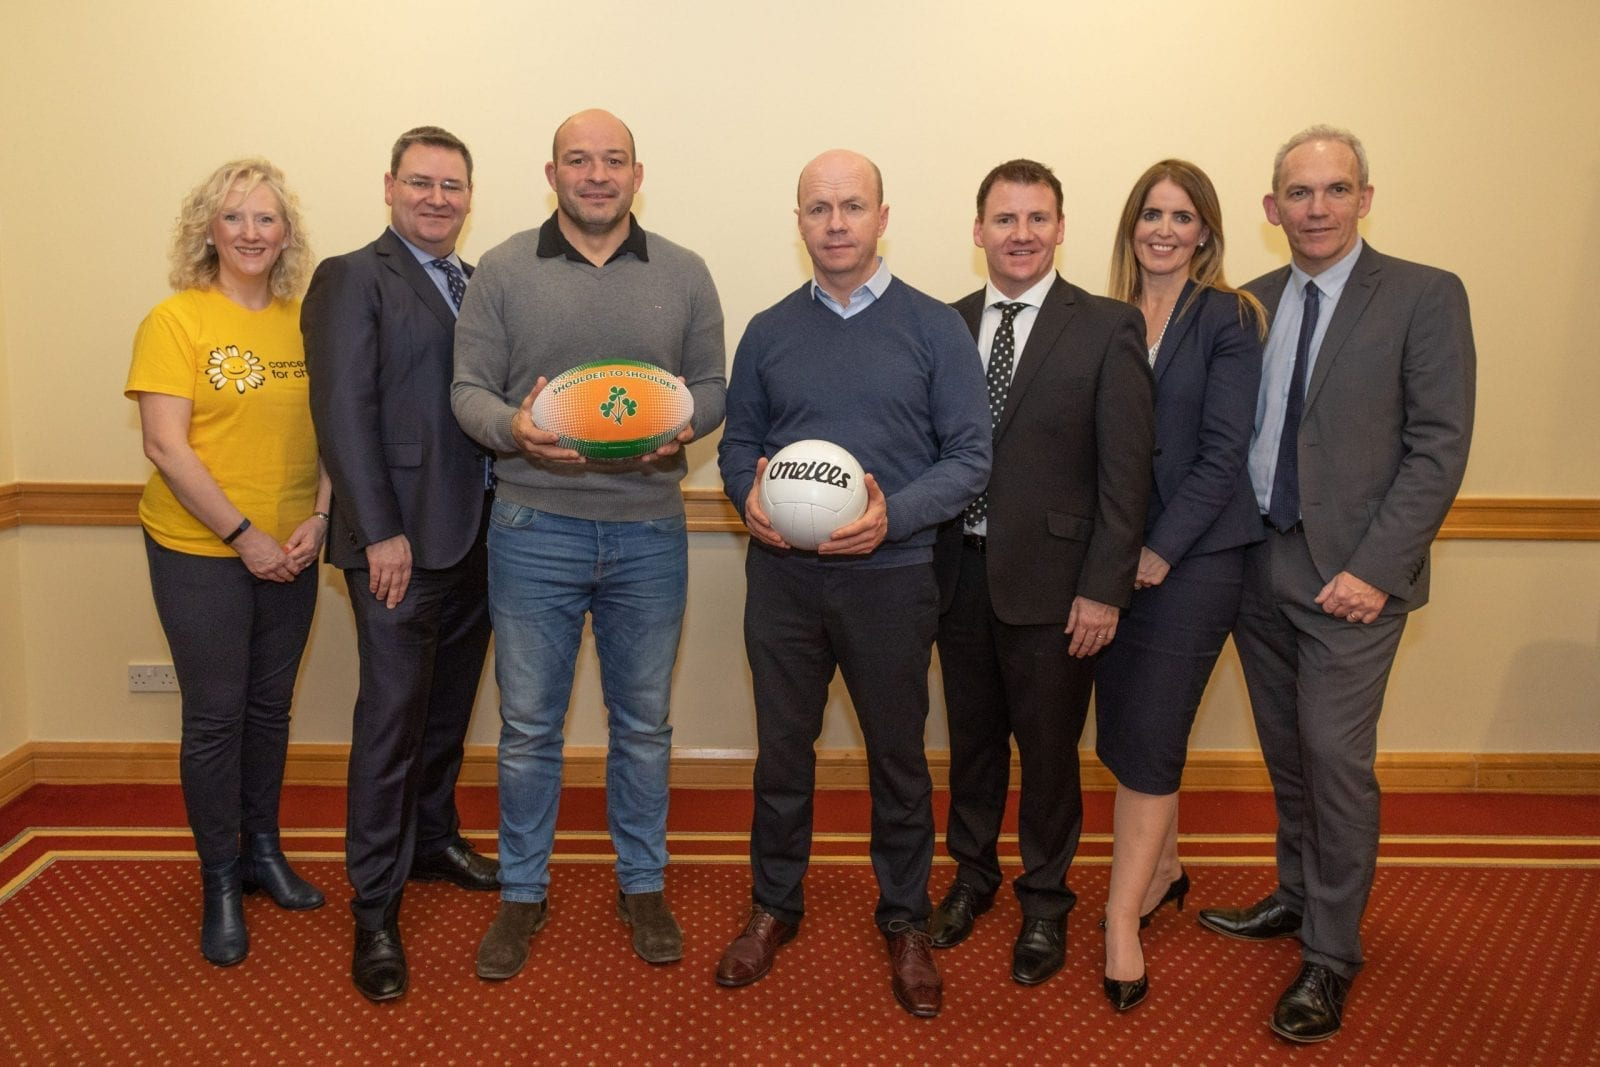 Rory Best & Peter Canavan celebrating An Evening of 2 Halves with JMK Solicitors and CRASH Services